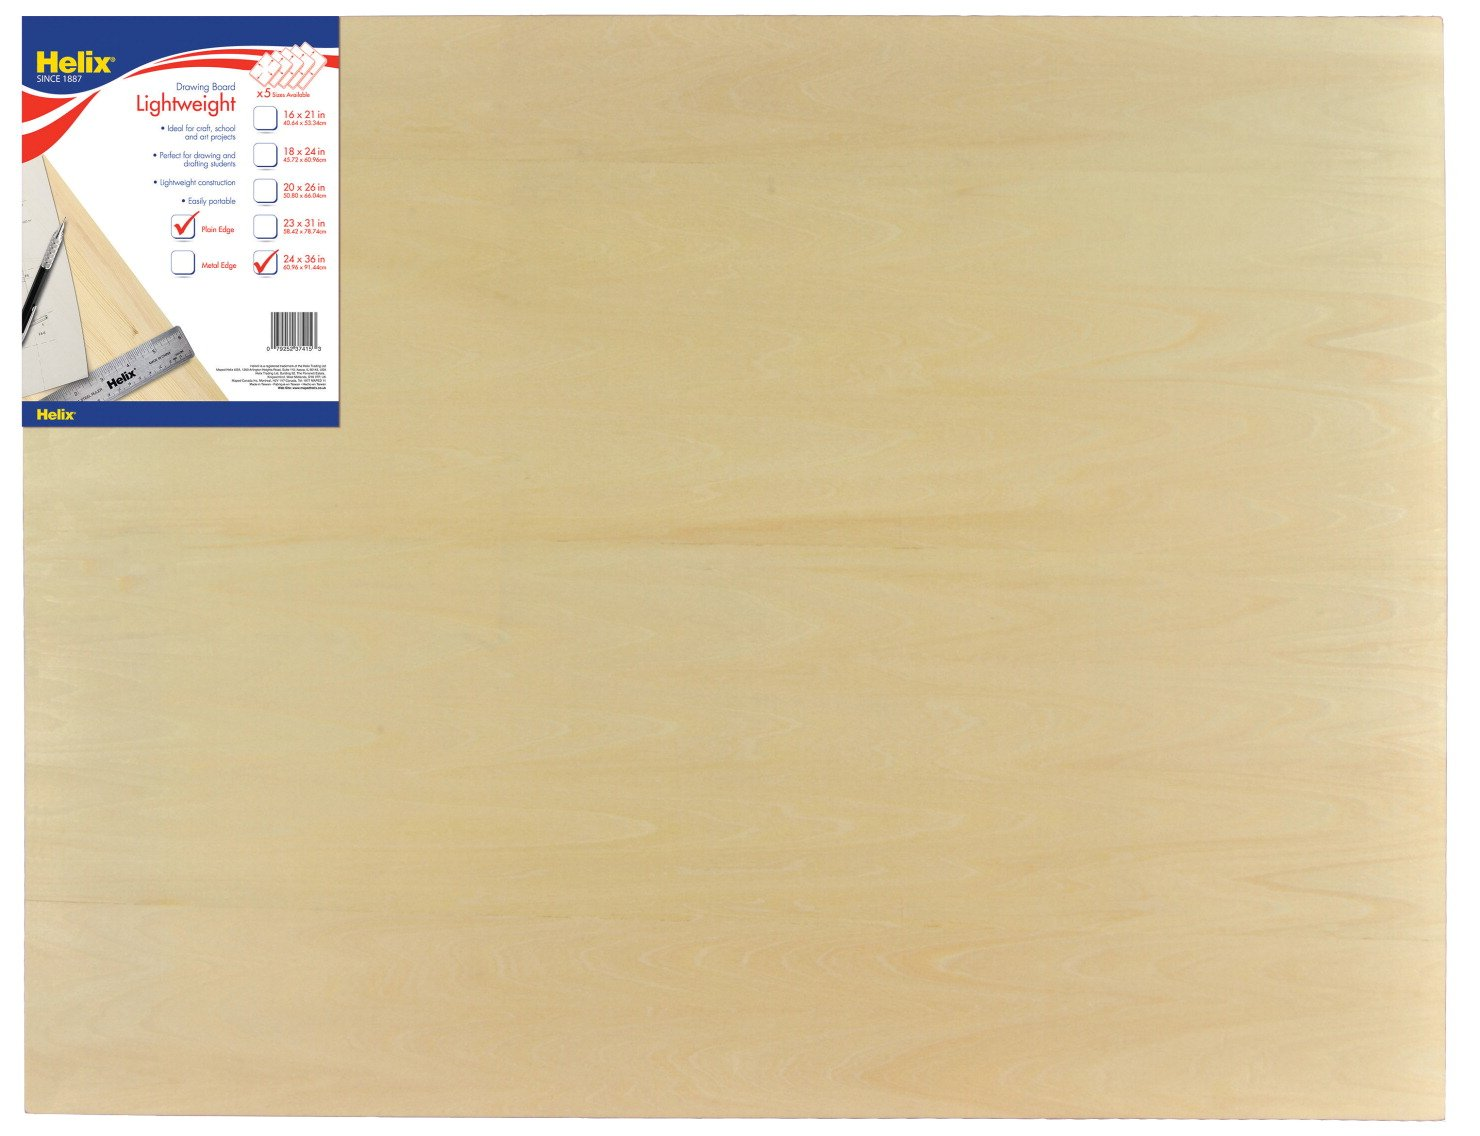 Helix Wooden Lightweight Drawing Board, 24 x 36 Inch, Plain Edge (37415) by Maped Helix USA